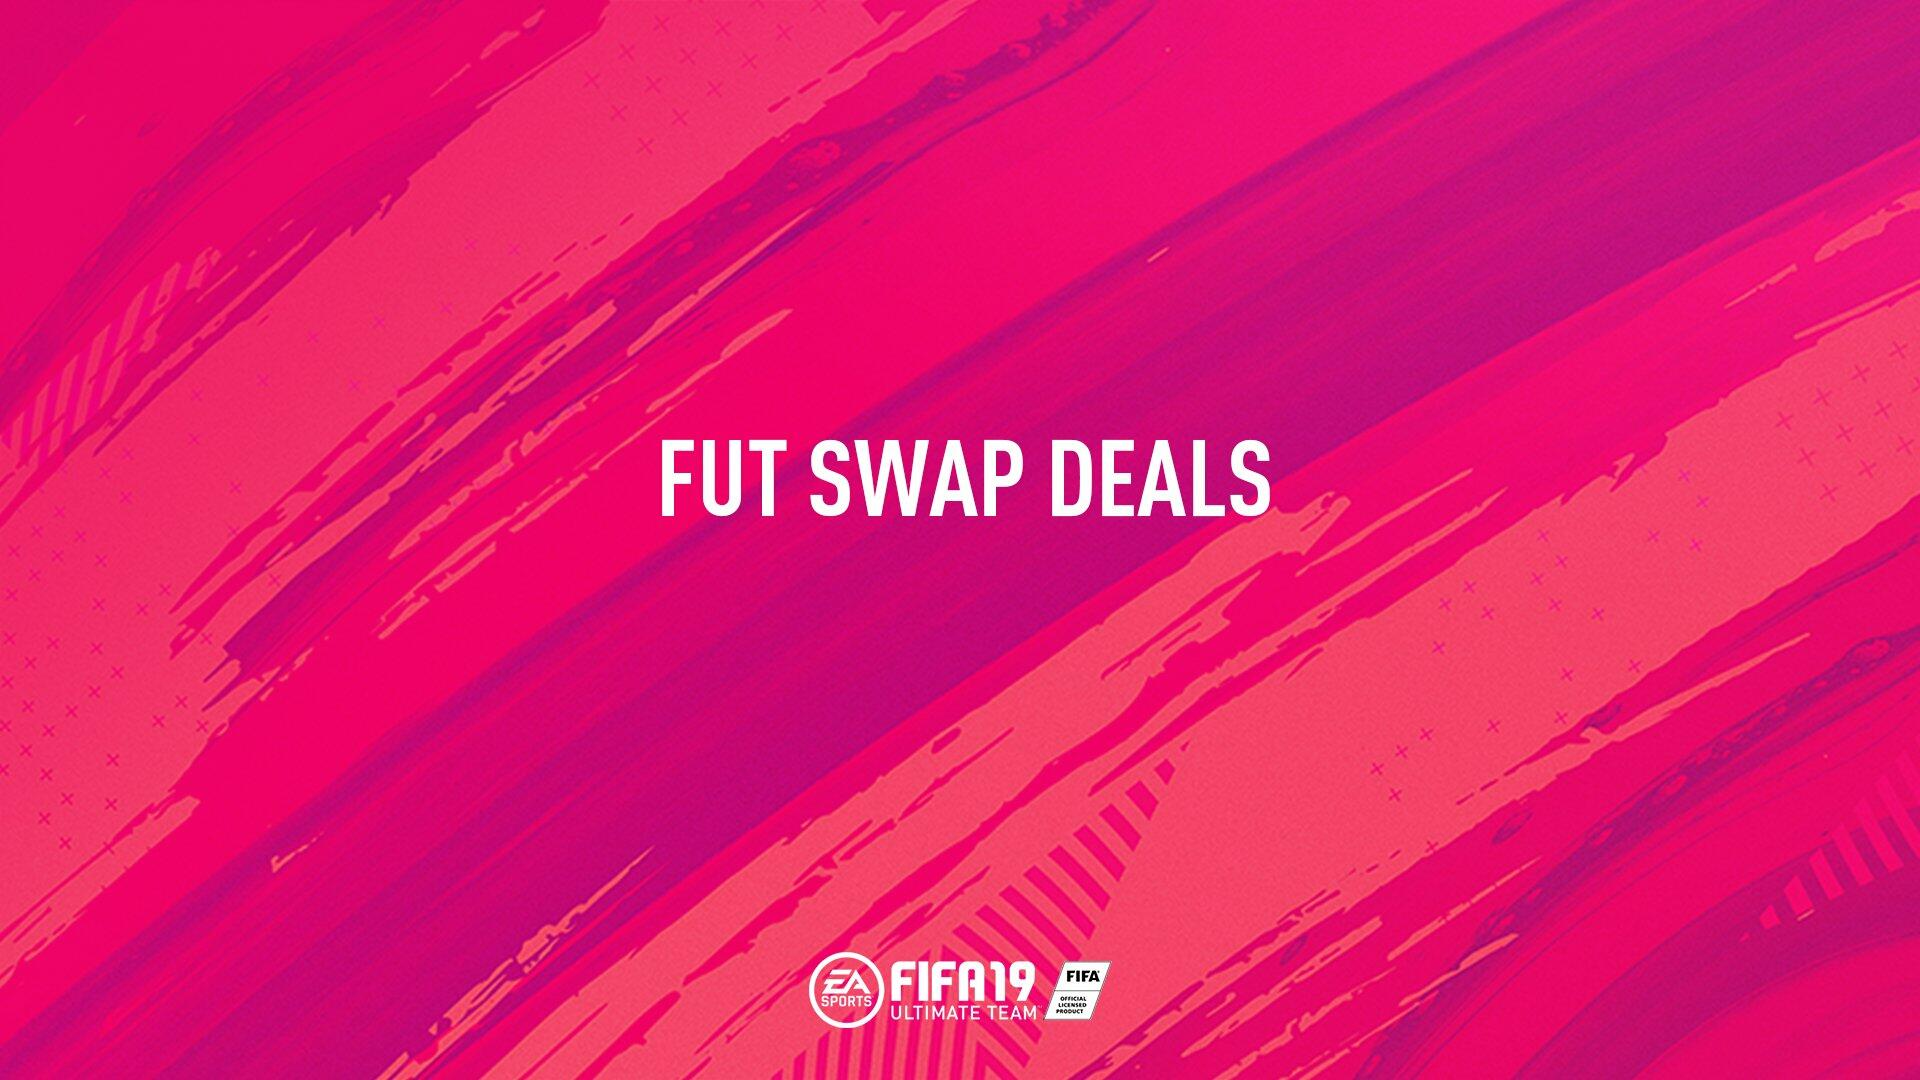 FUT Swap Items - FIFA 19 Swap Deals, Swap Player Items List January 2019